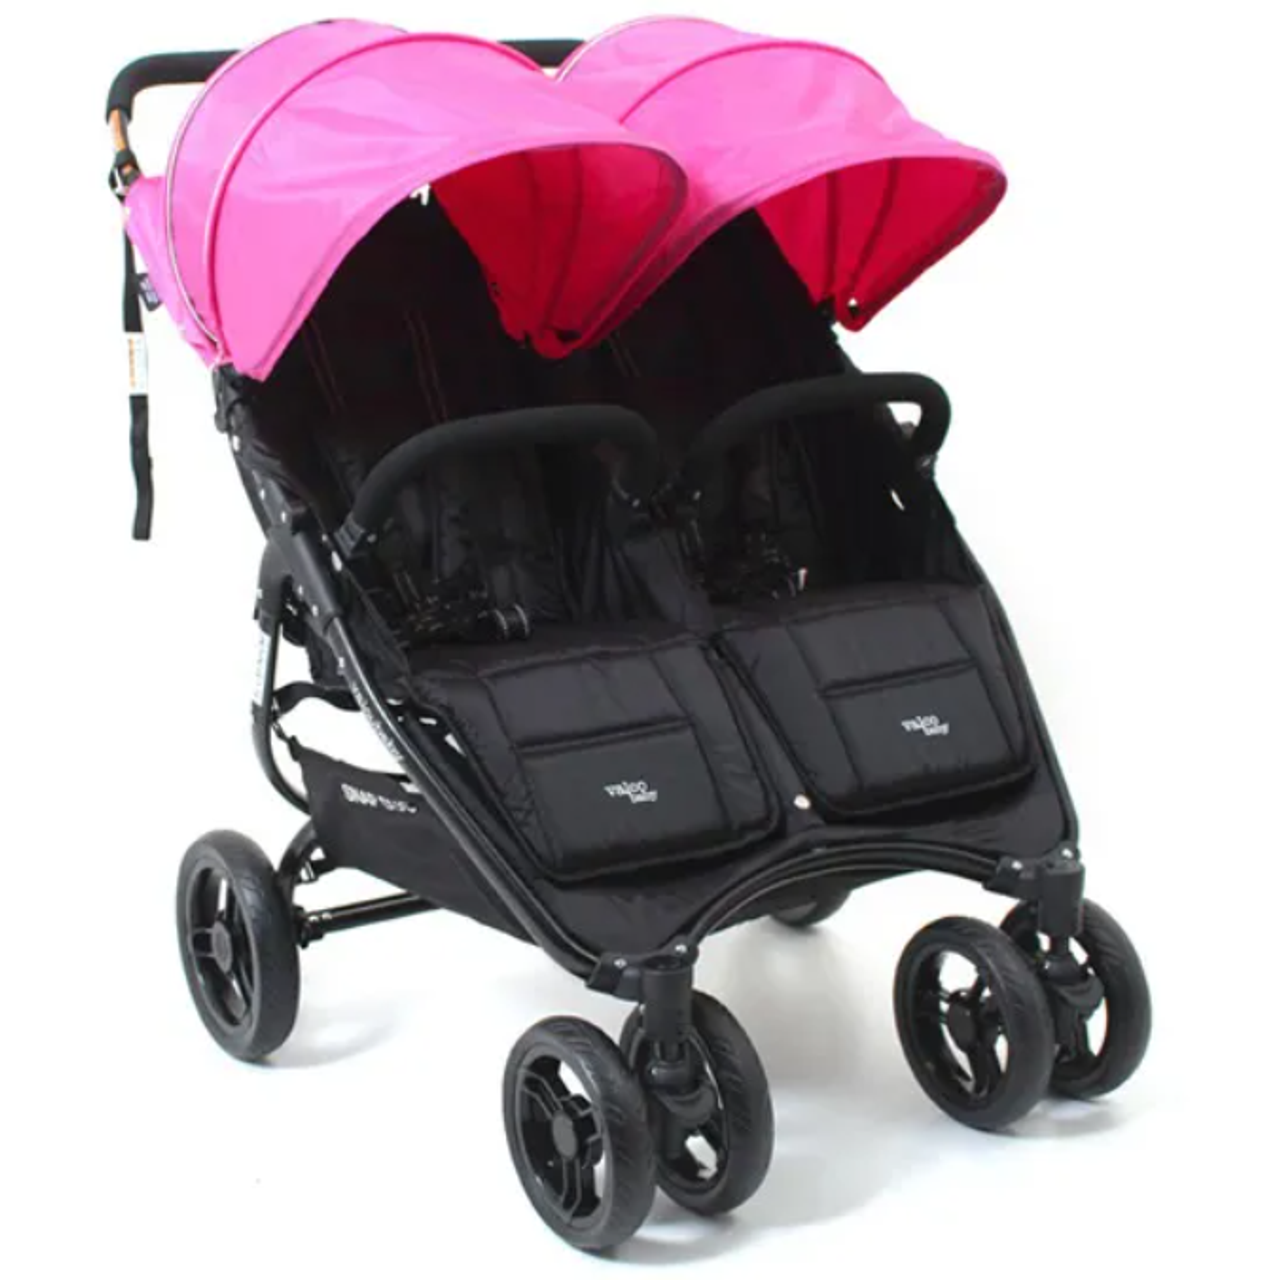 Valco Baby Vogue Hood to fit Snap Duo Stroller at Baby Barn Discounts Valco Baby replacement sunhood to fit your Valco Snap Duo stroller.